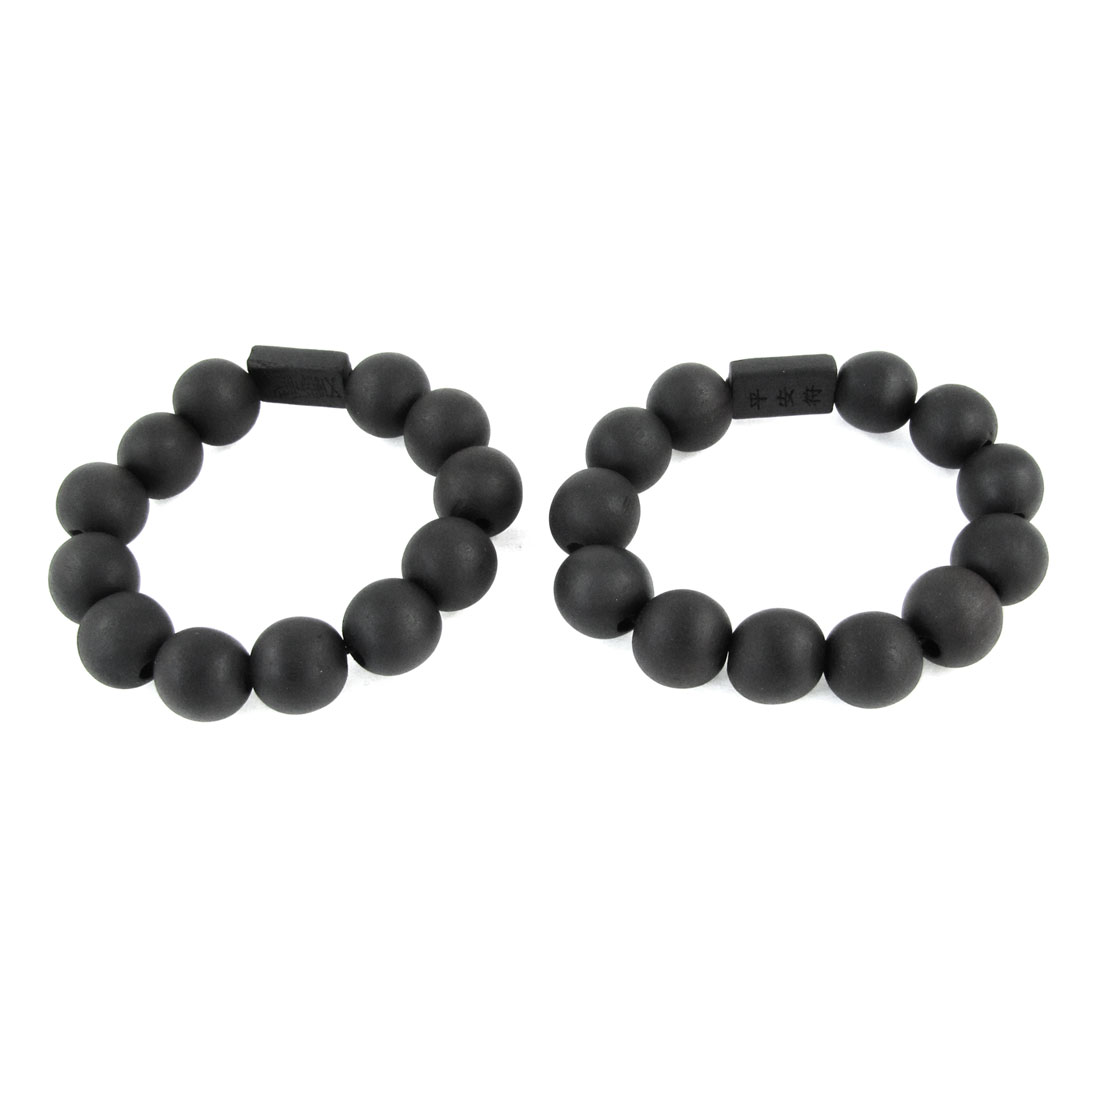 l2 Pcs Beaded 12 Round Wooden Beads Elastic Bracelet Black